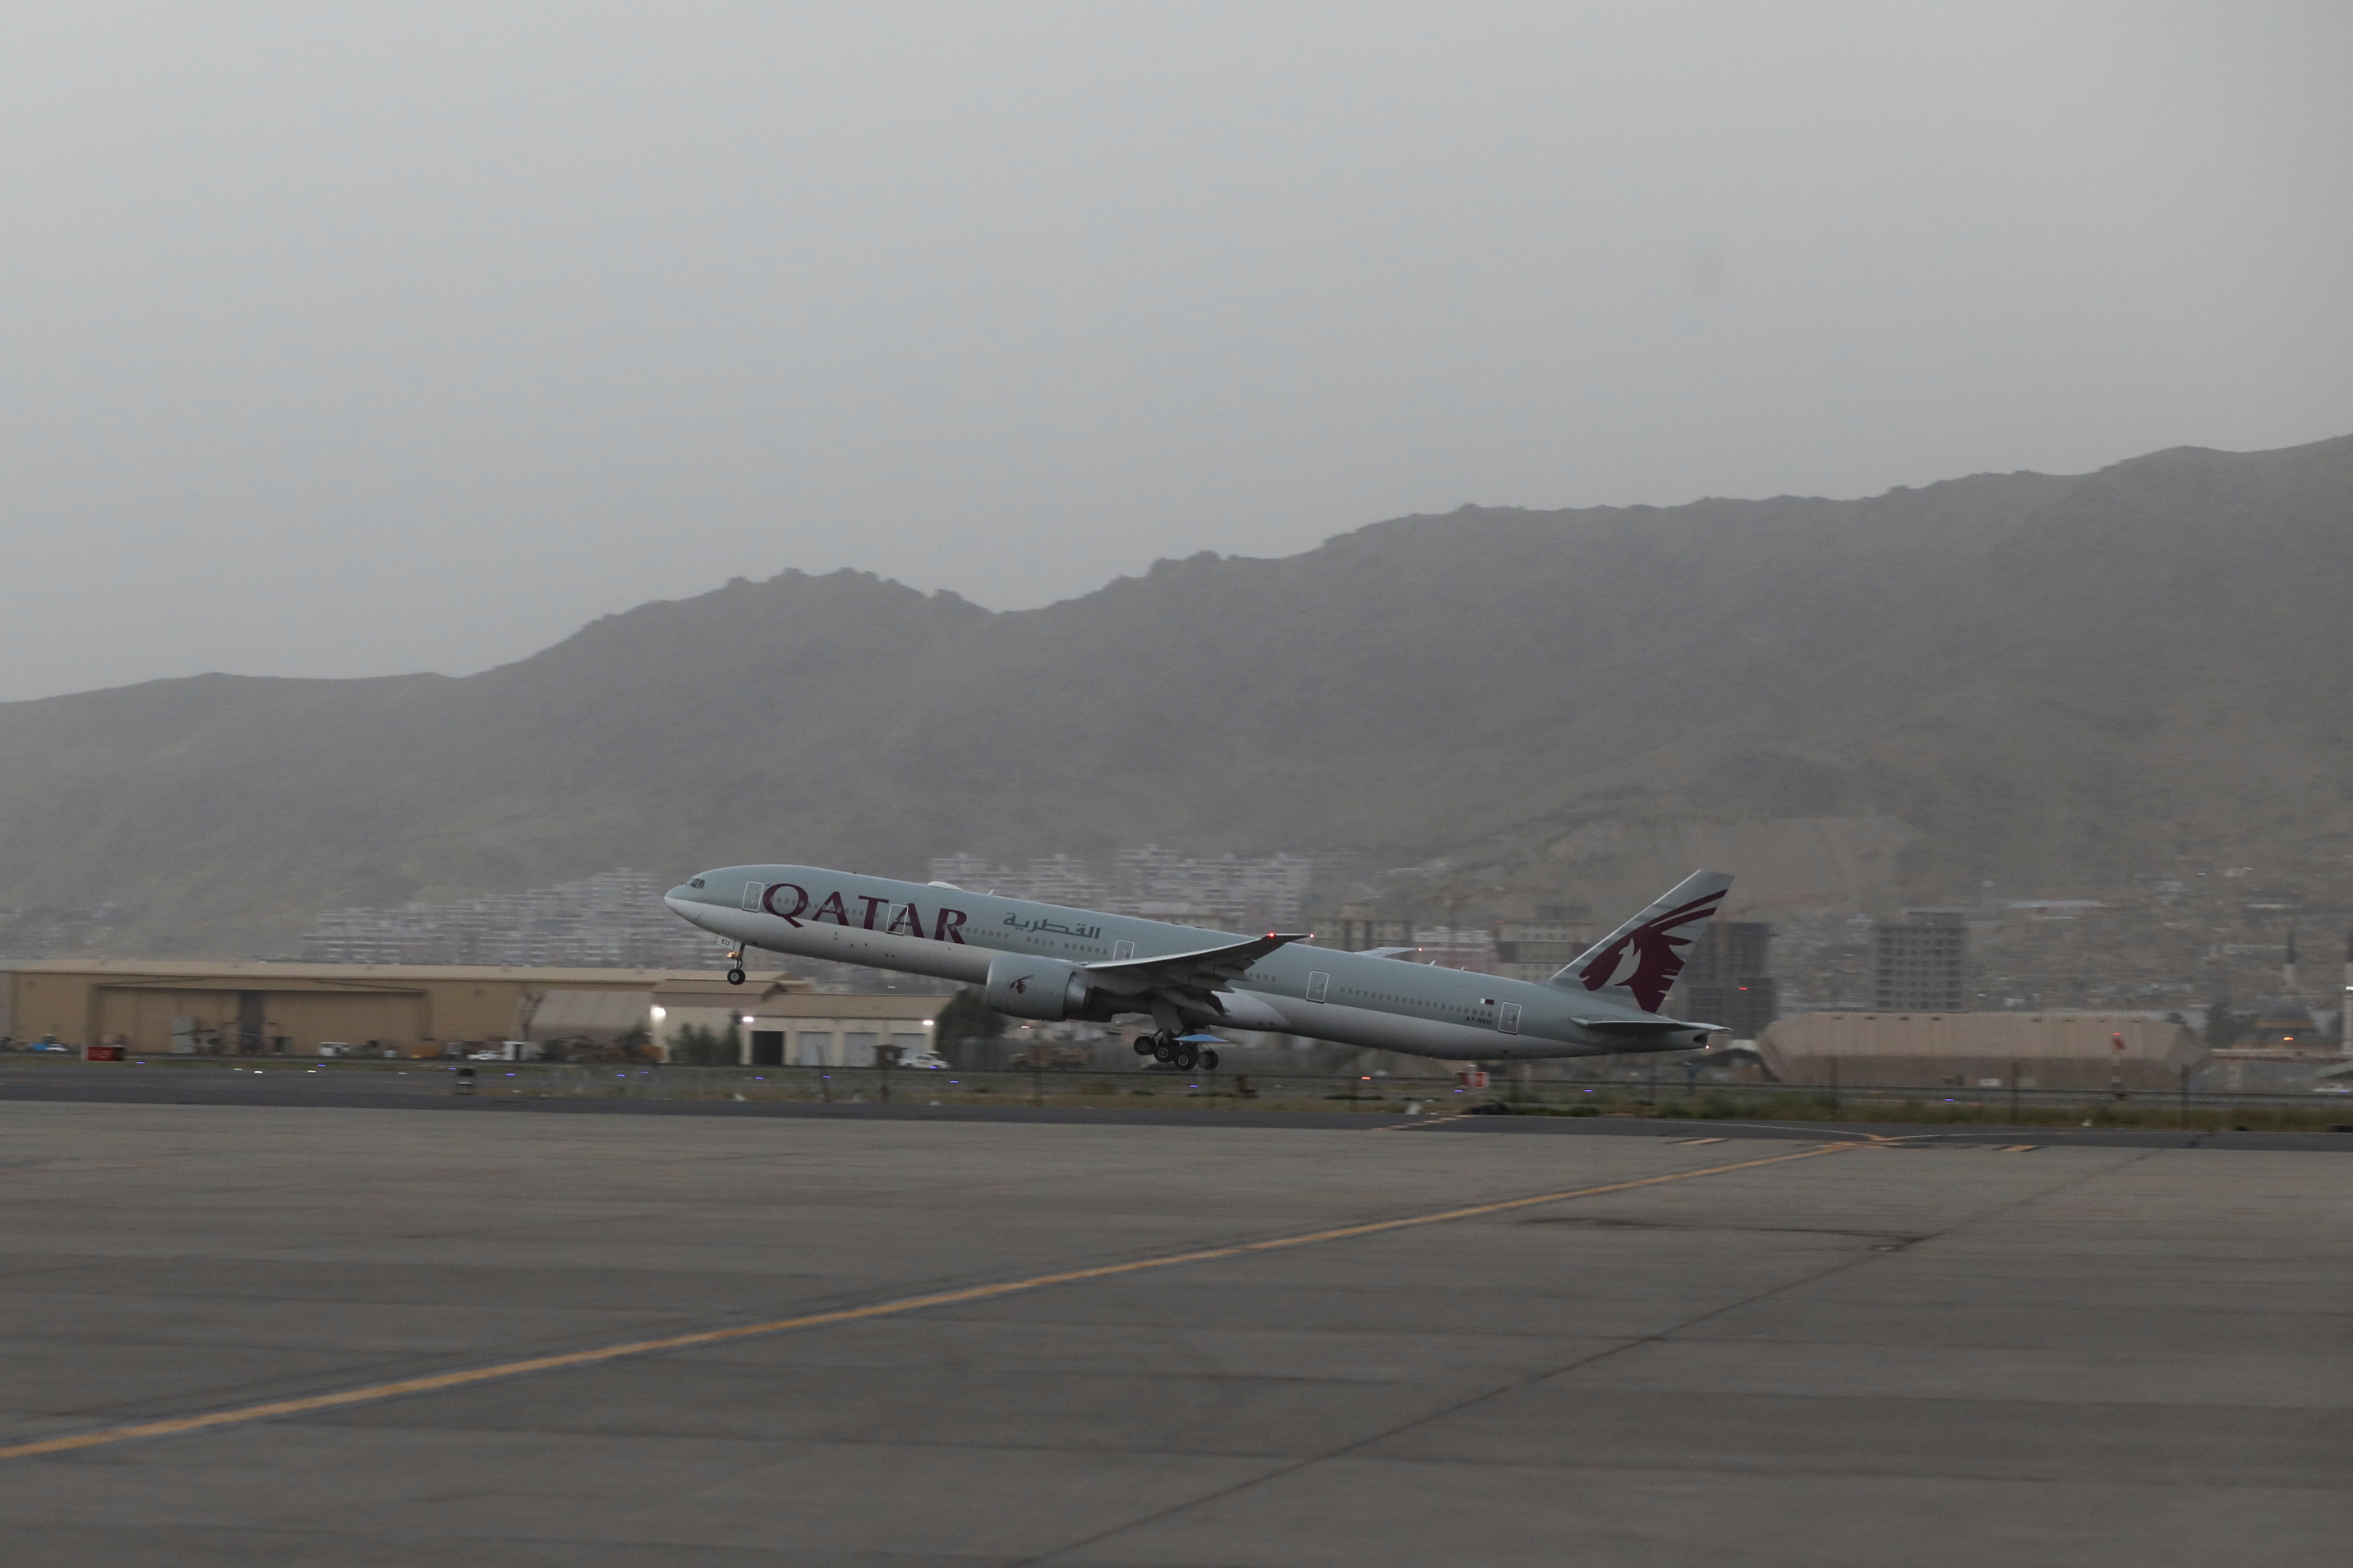 A Qatar Airways flight takes off from the international airport in Kabul, Afghanistan, September 10, 2021. WANA (West Asia News Agency) via REUTERS